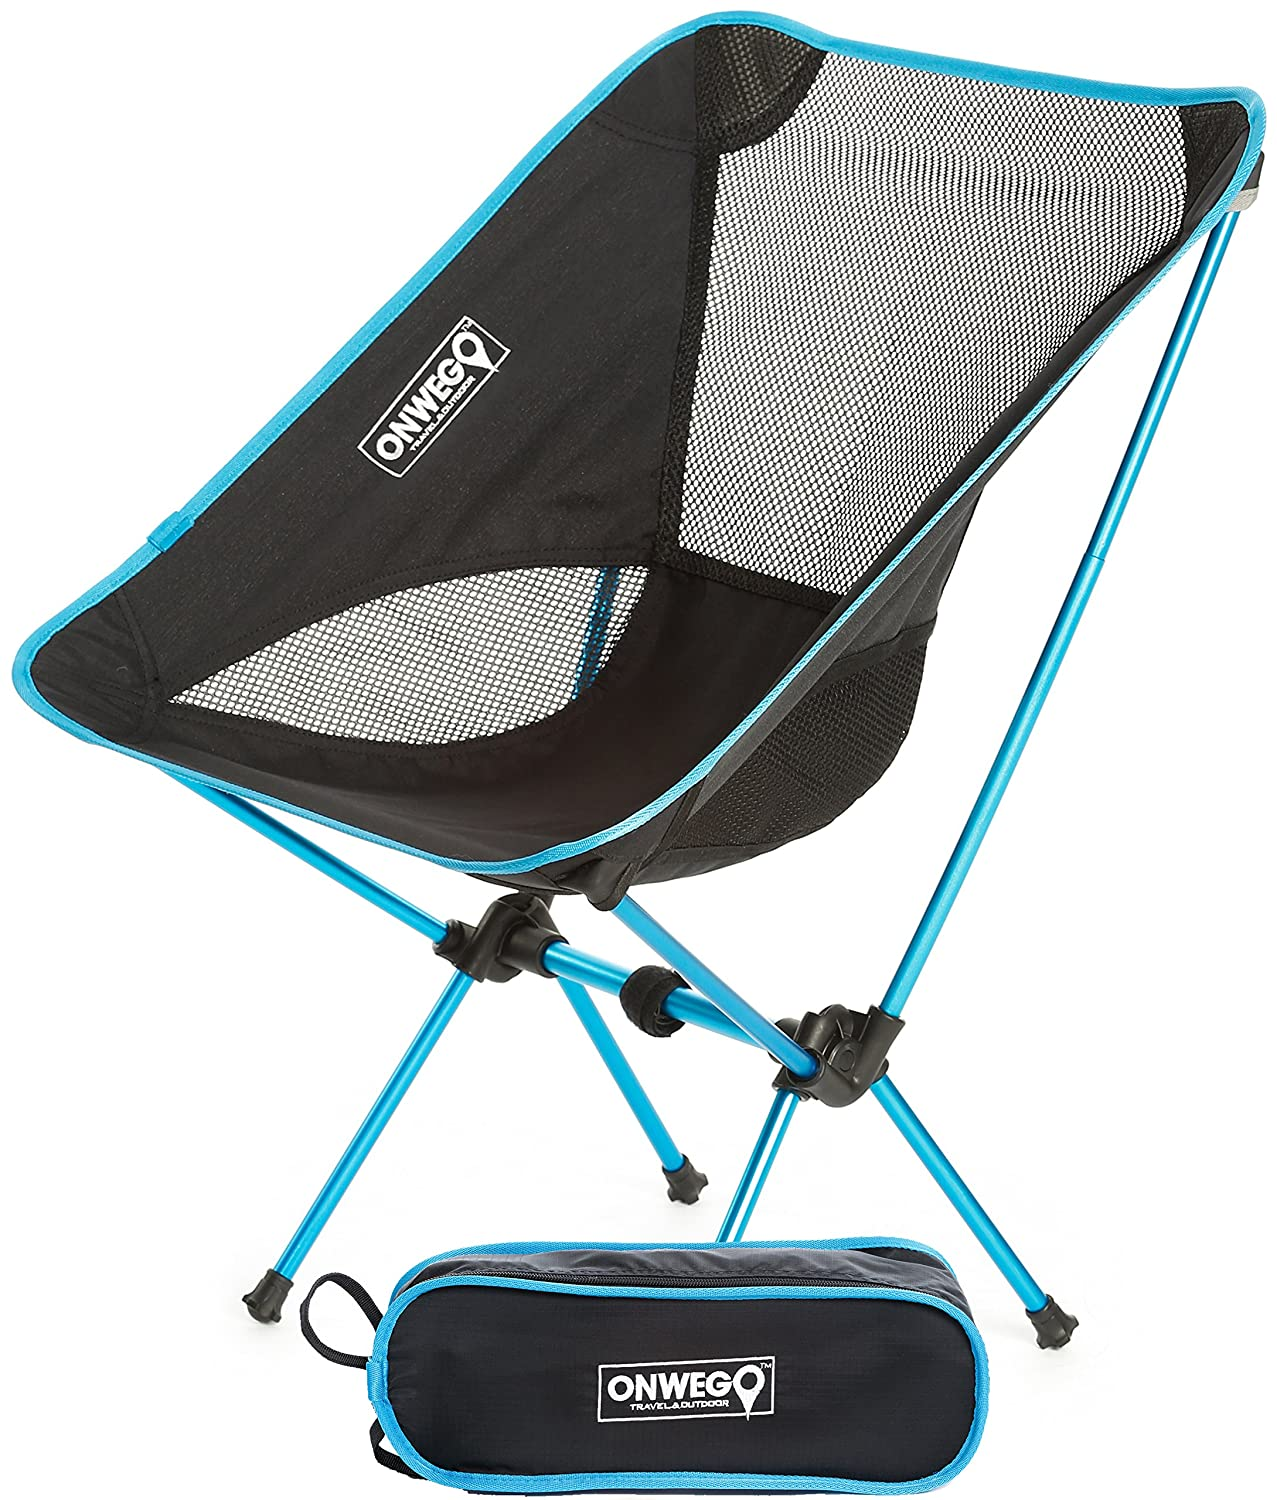 ONWEGO Ultralight Camping and Outdoor Chair